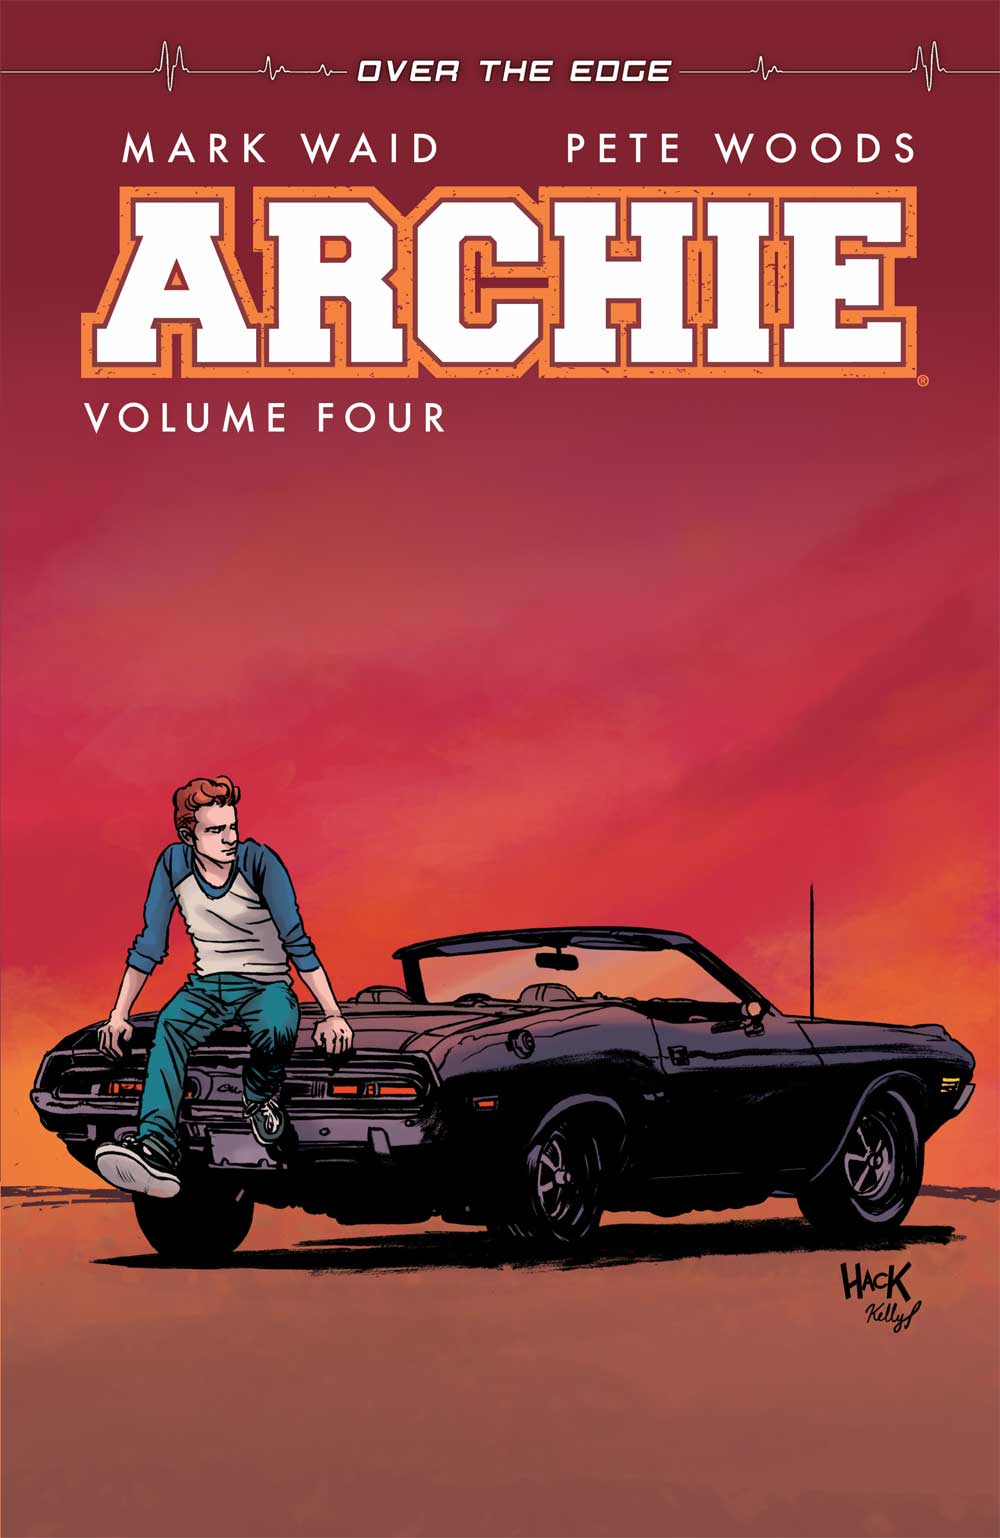 Archie v4, Script: Mark Waid Art: Pete Woods, Jack Morelli Cover: Robert Hack